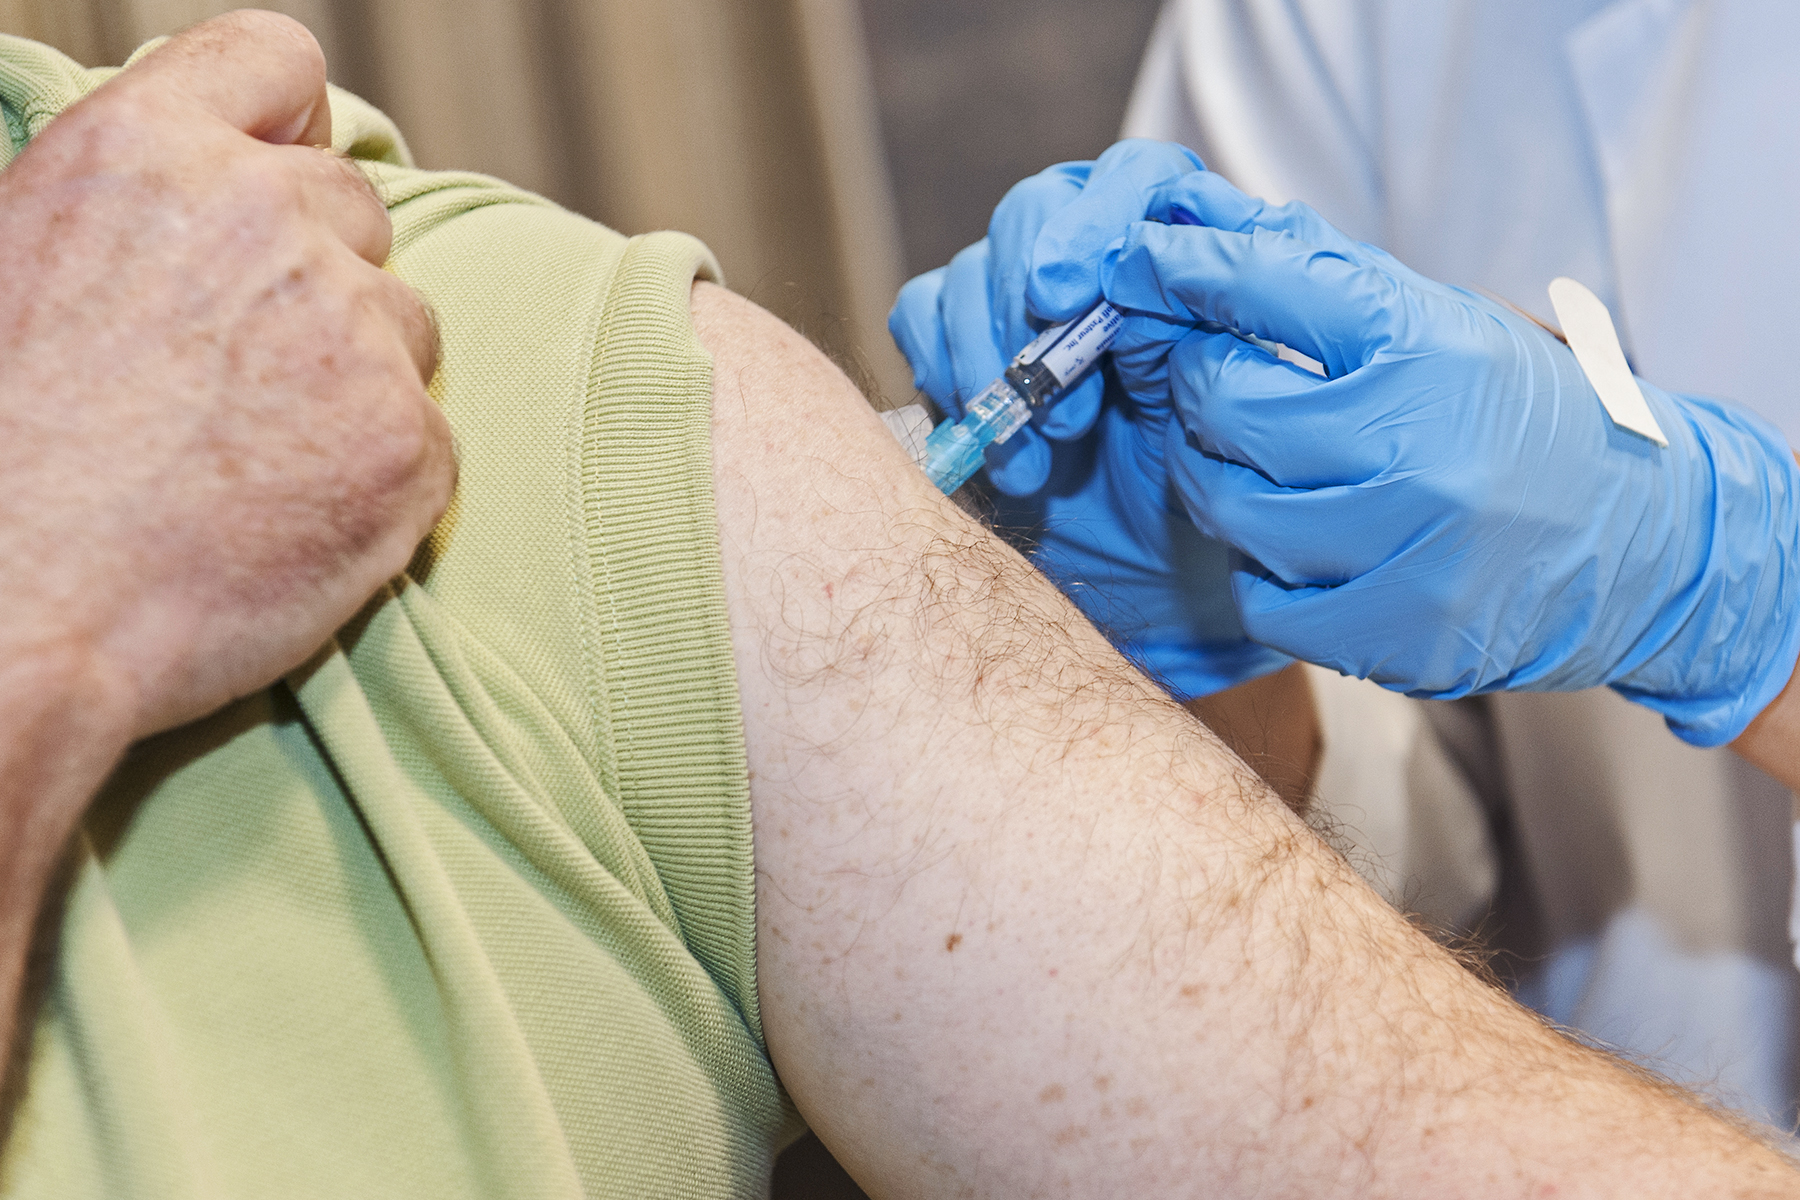 Man recieves flu shot in arm